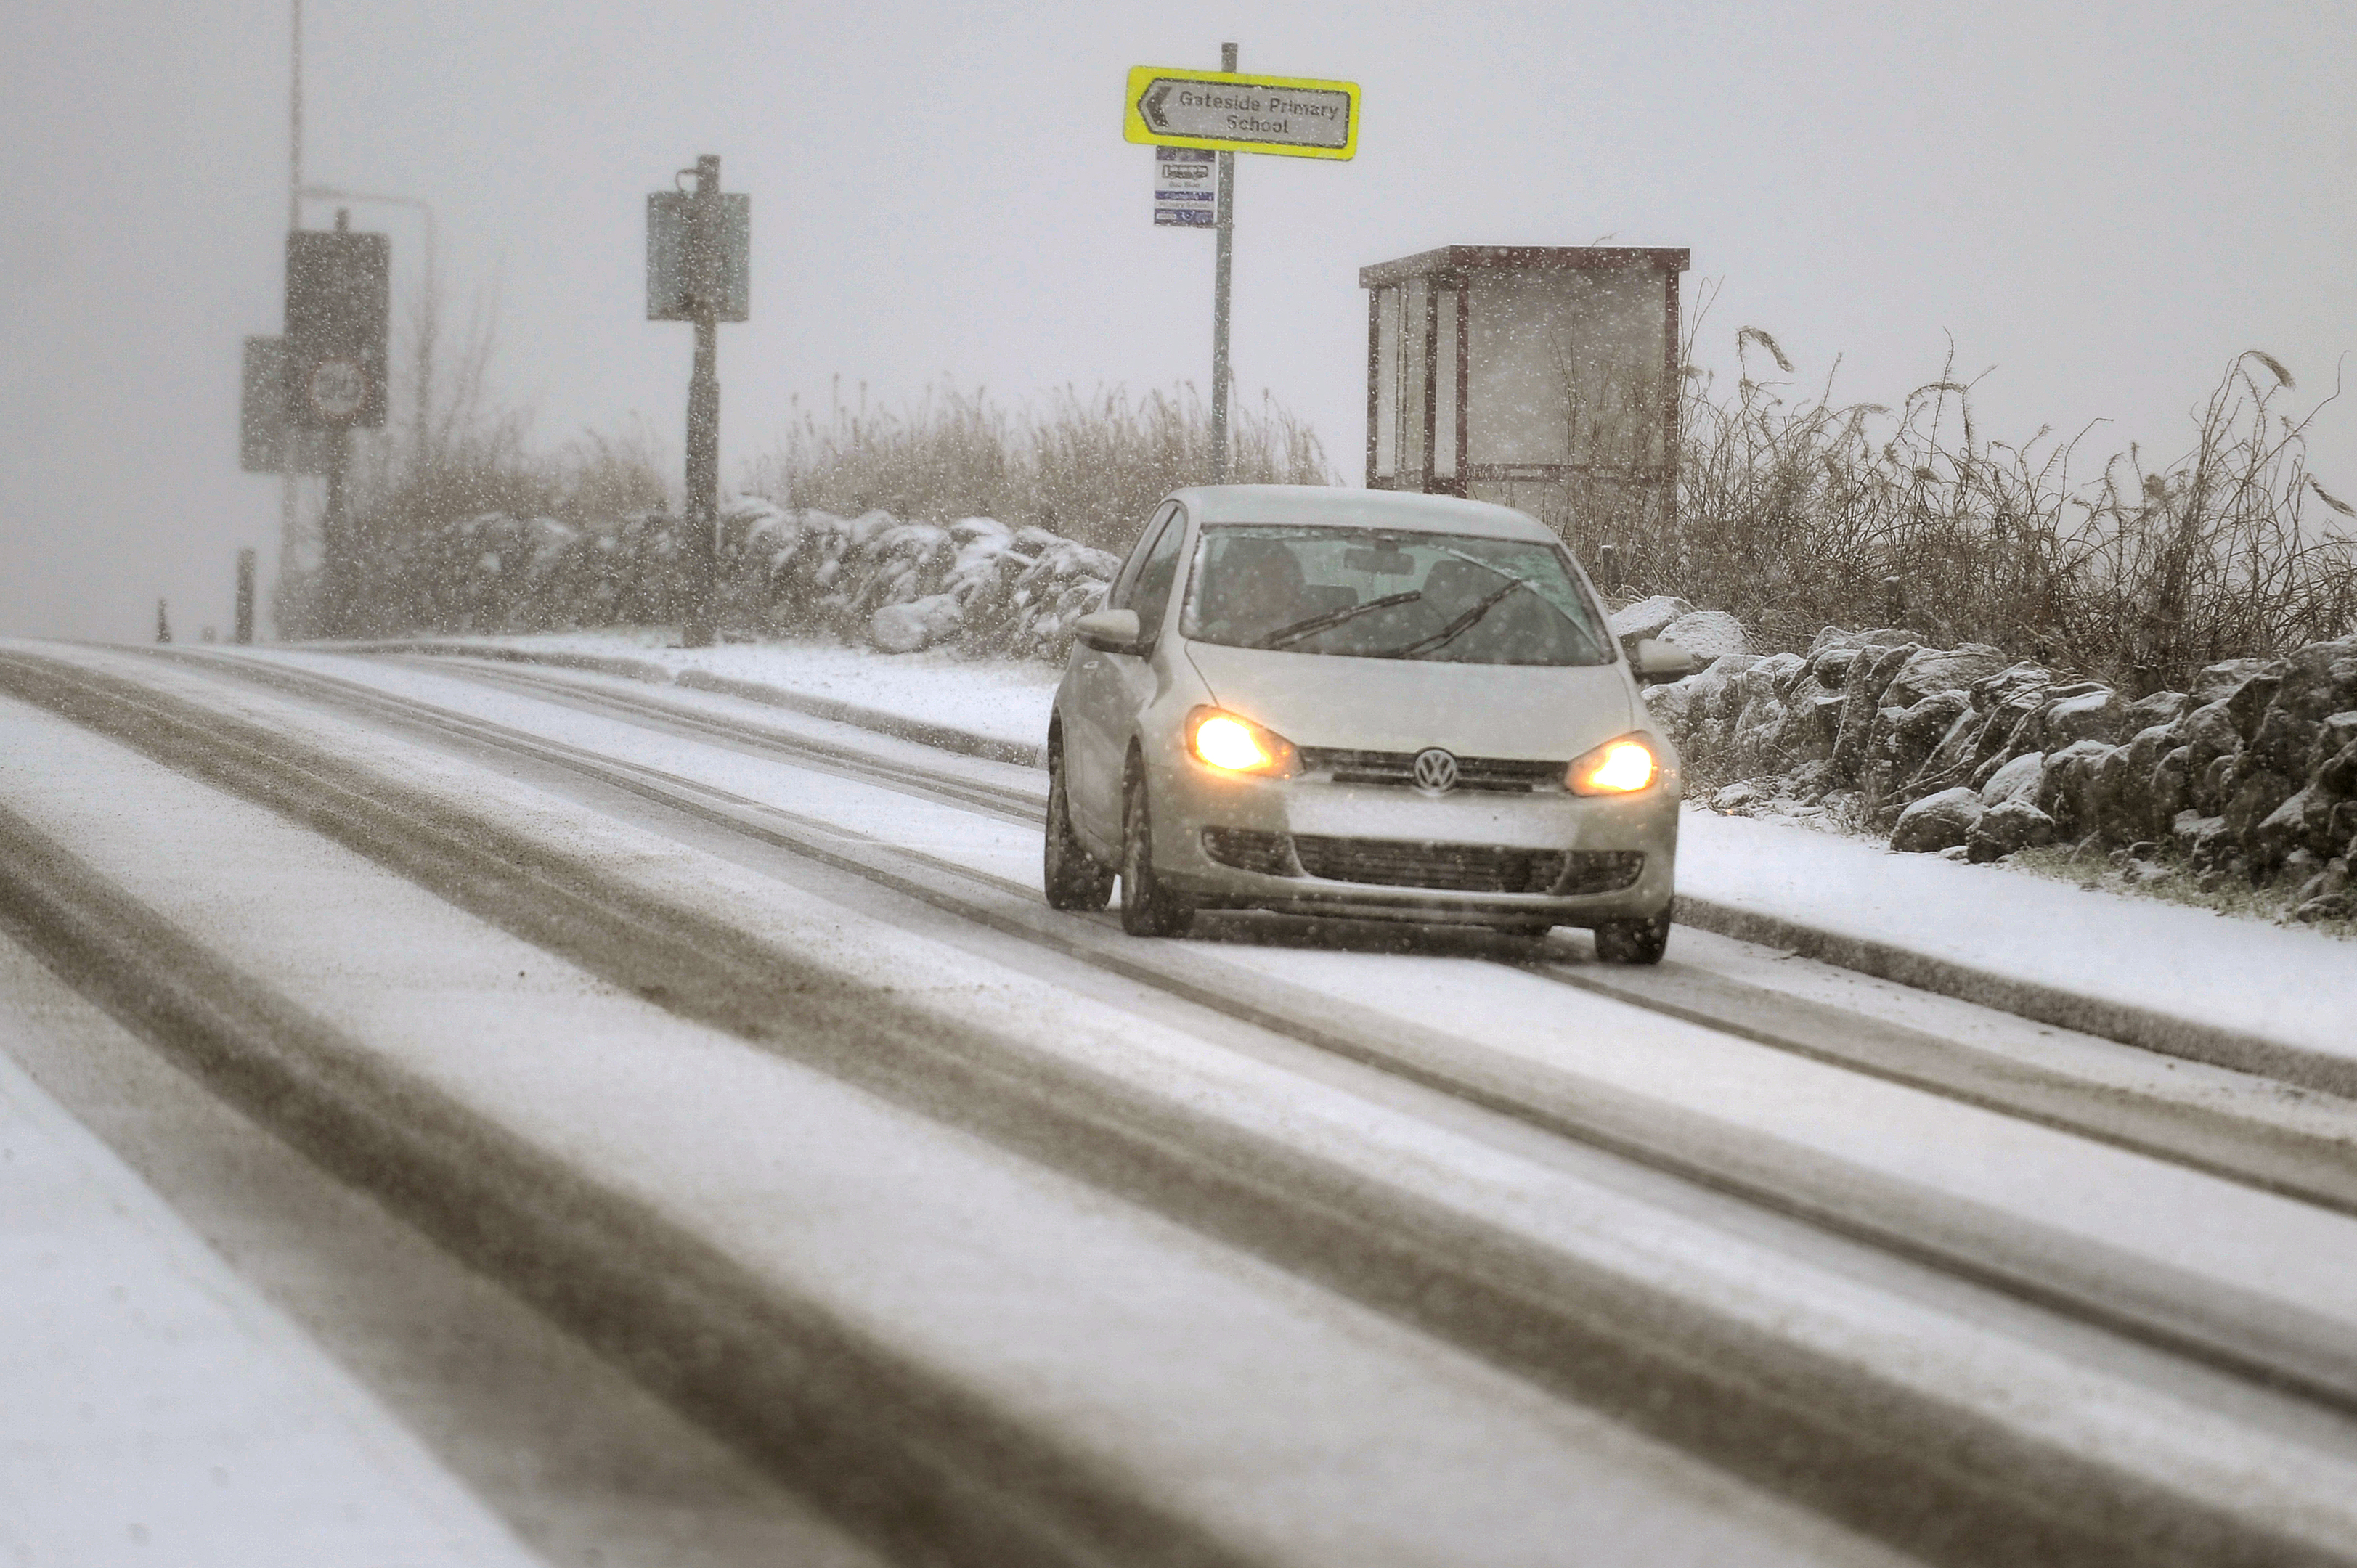 A car makes its way through the snow in Main Road, Gateside.